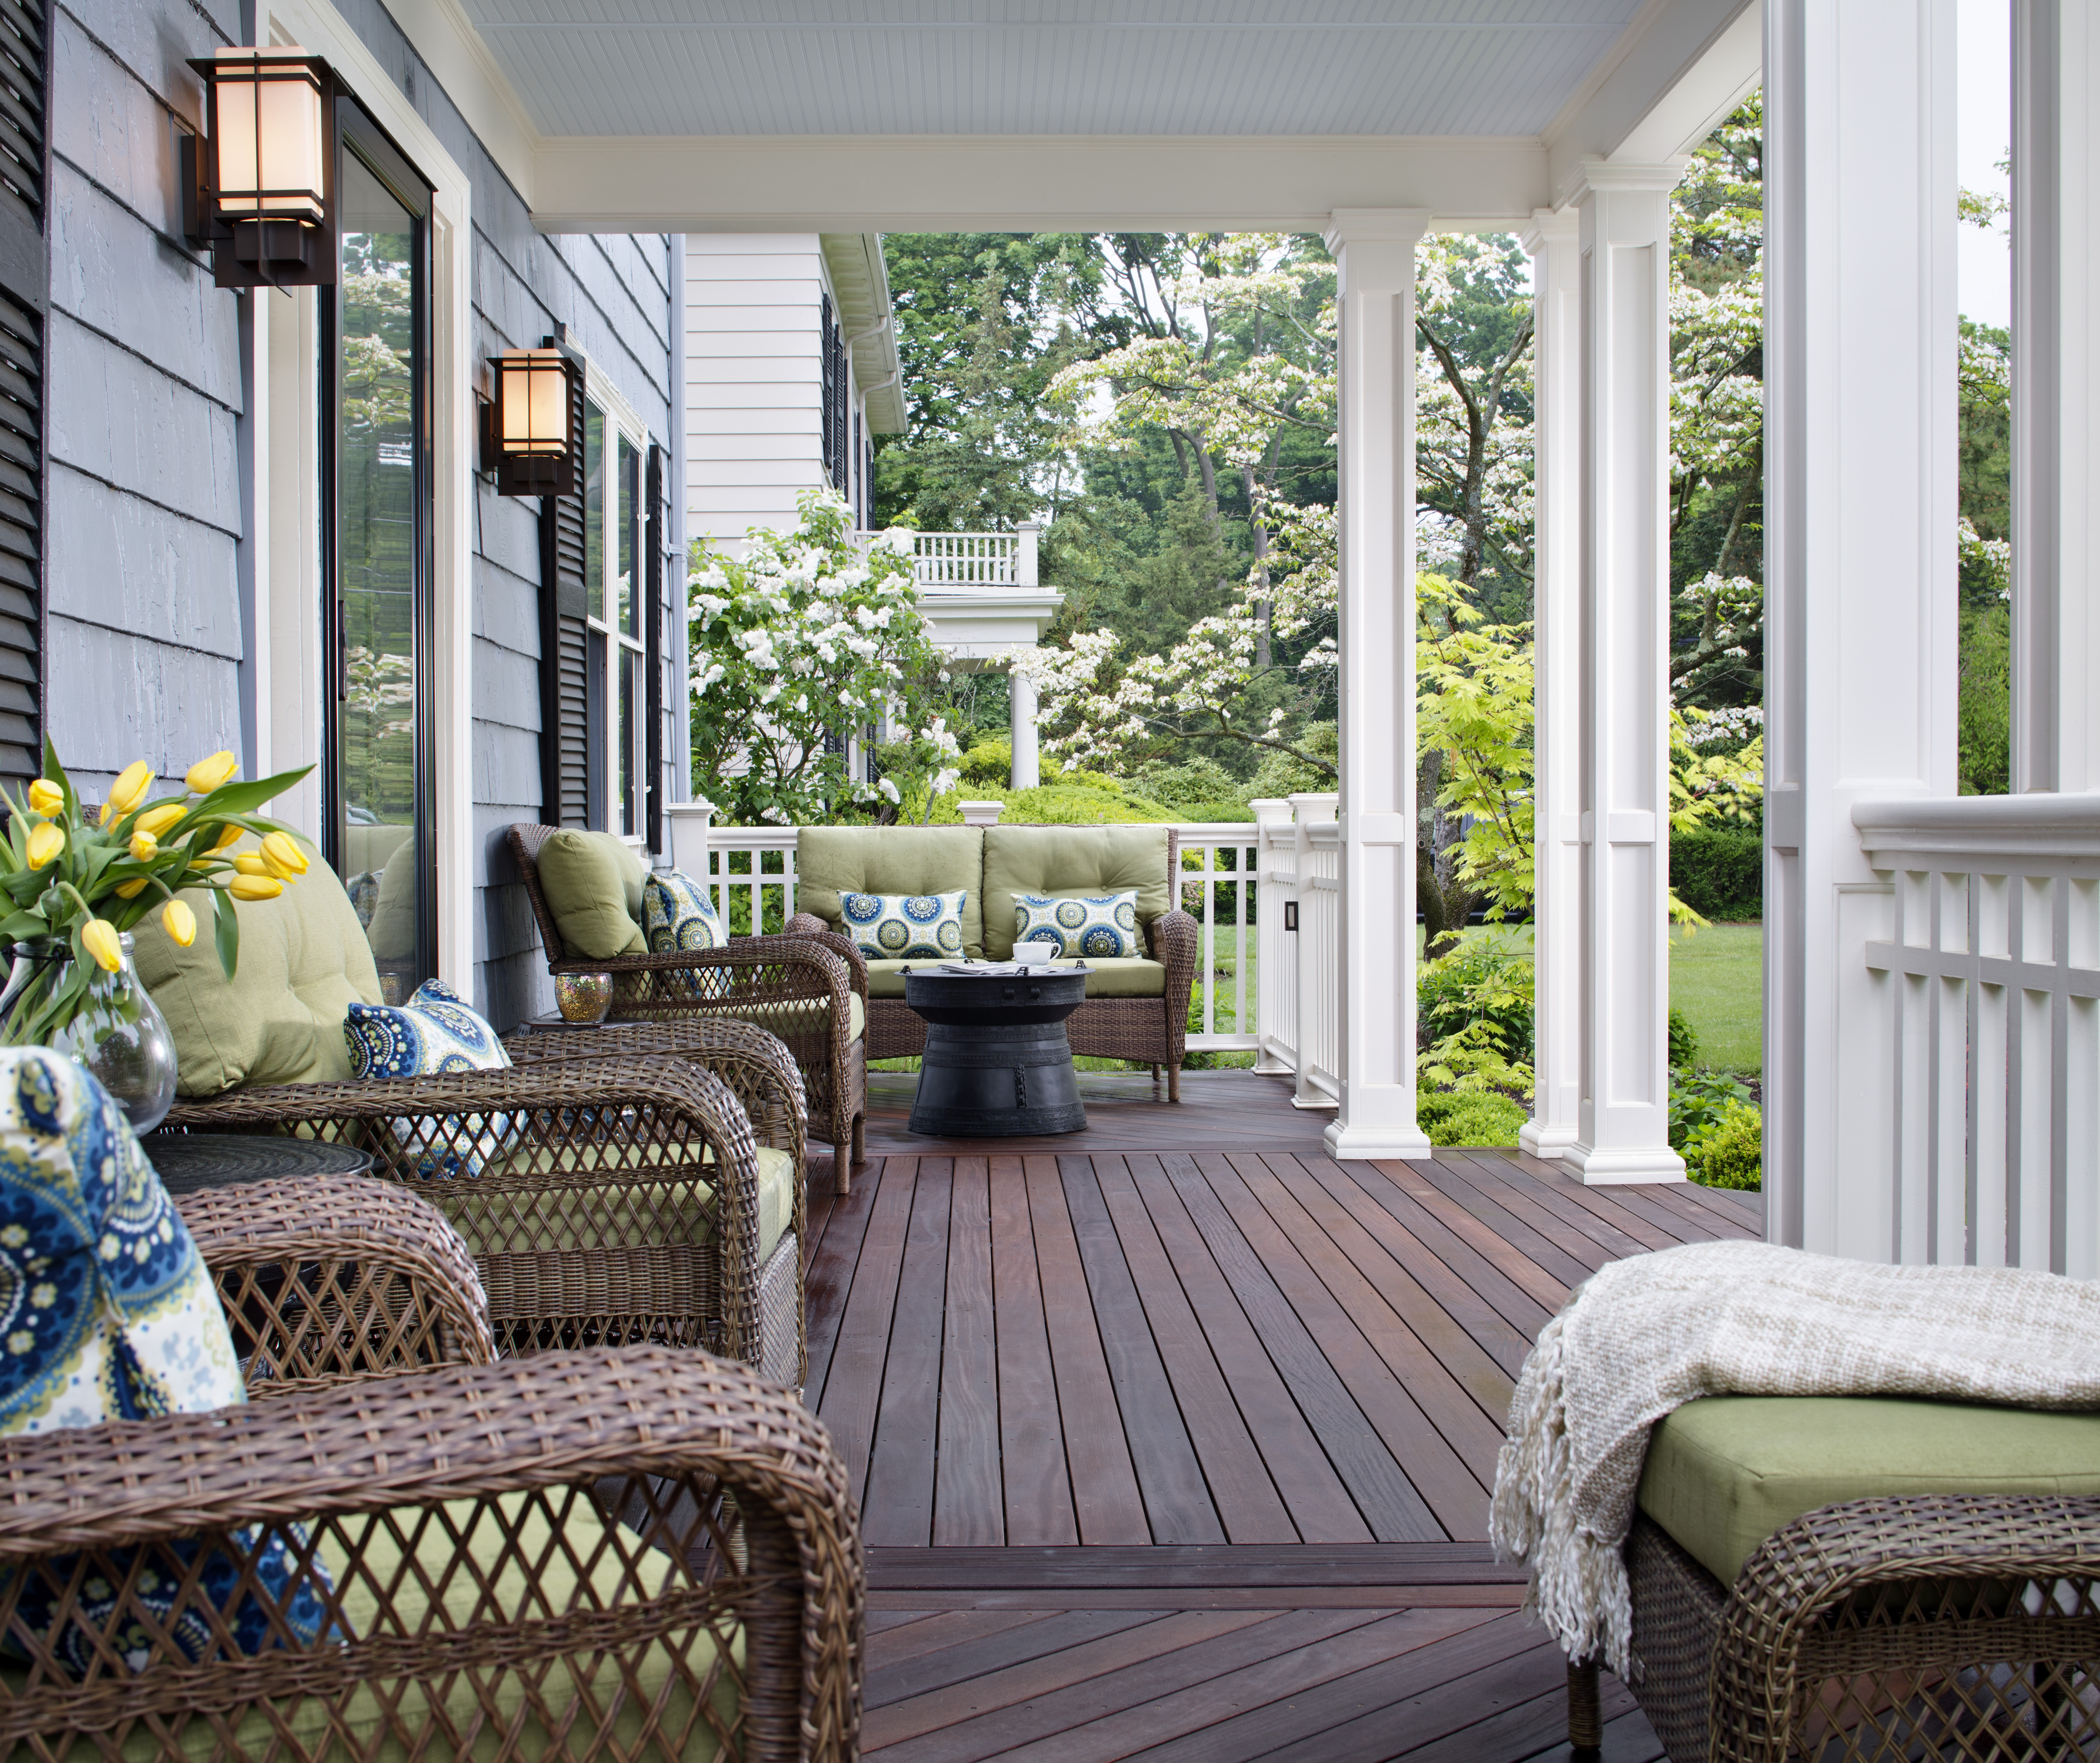 While many front porches have stone floors, wood decking was used ...